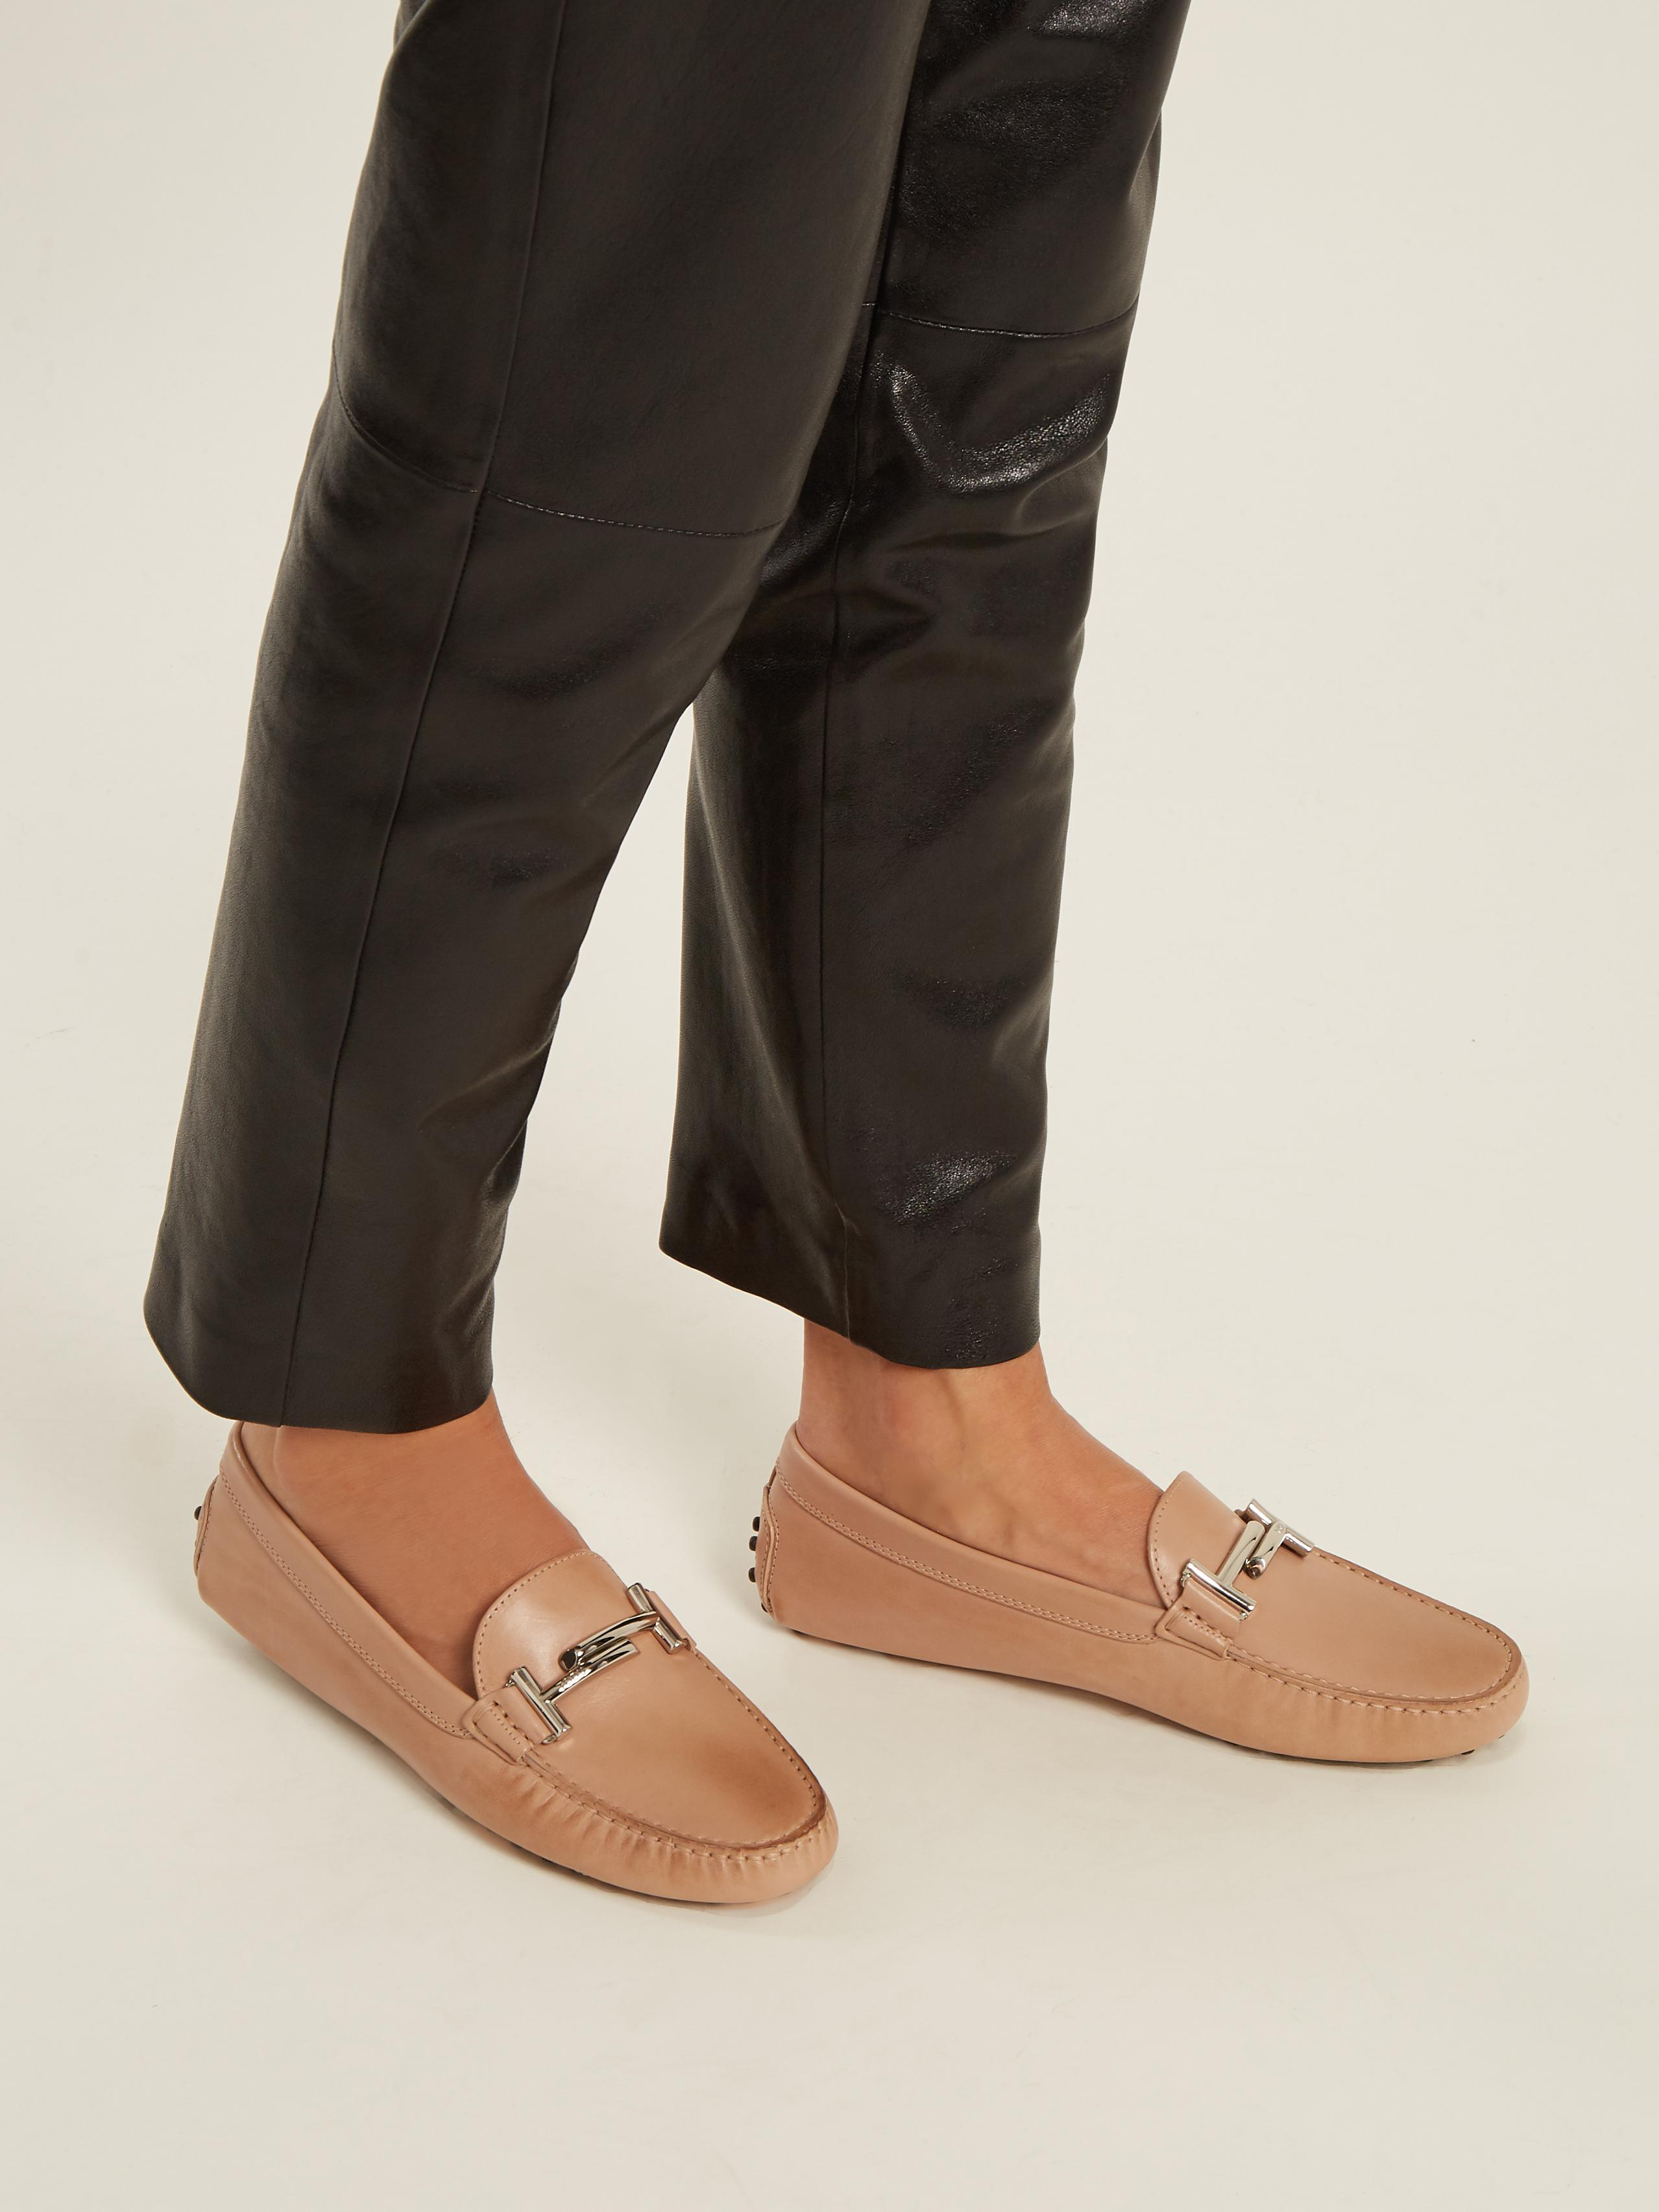 Bar Gommino T Multicolor Tod's Leather Loafers OiZPTXku